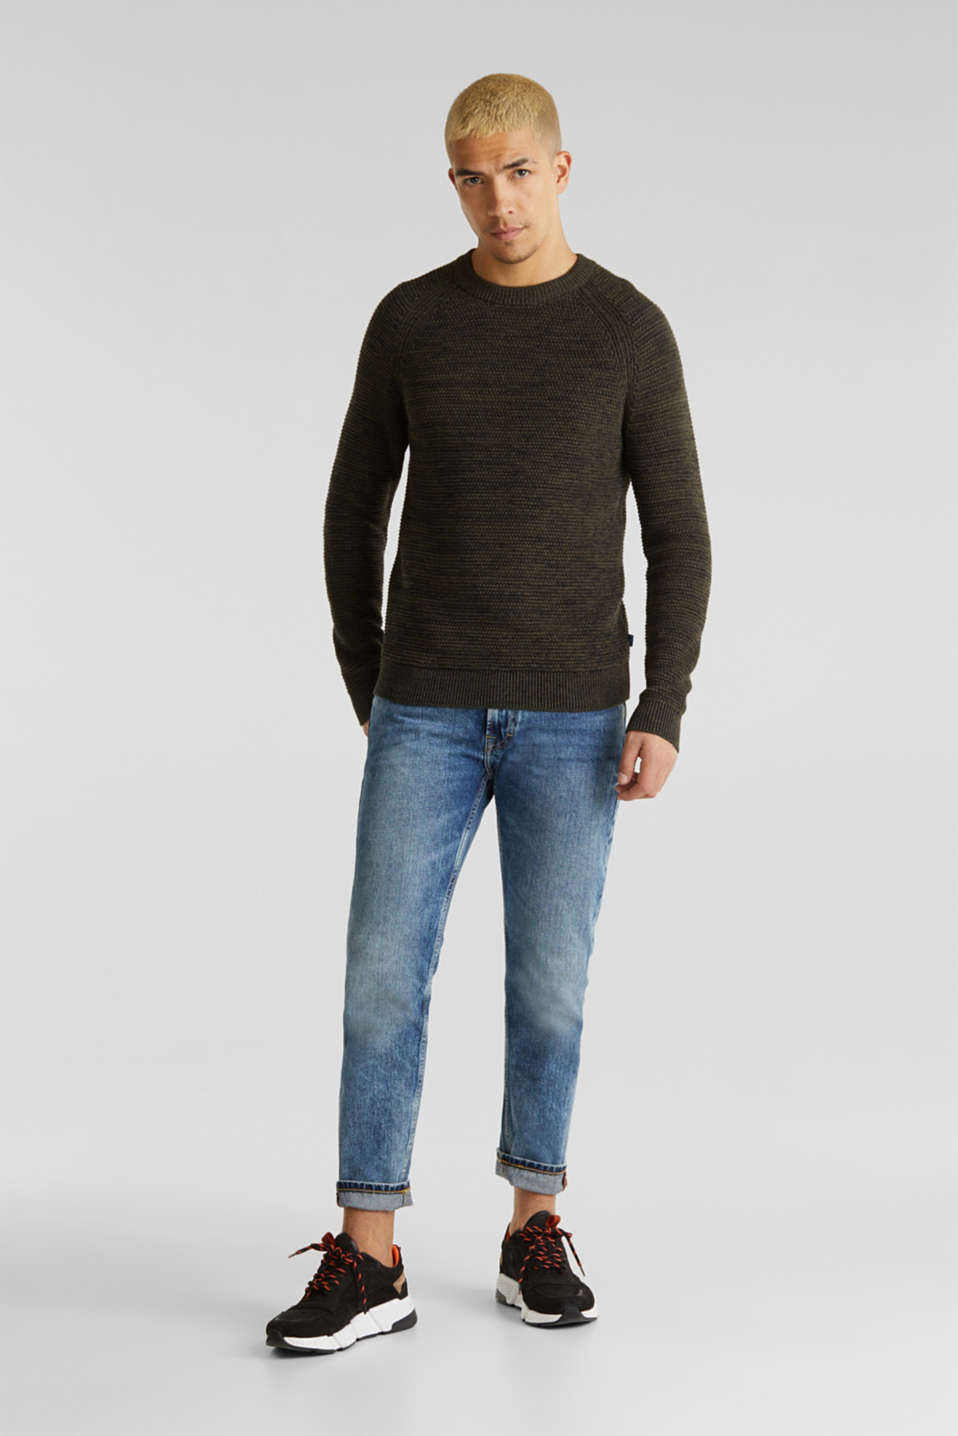 Textured jumper made of 100% cotton, KHAKI GREEN 5, detail image number 7